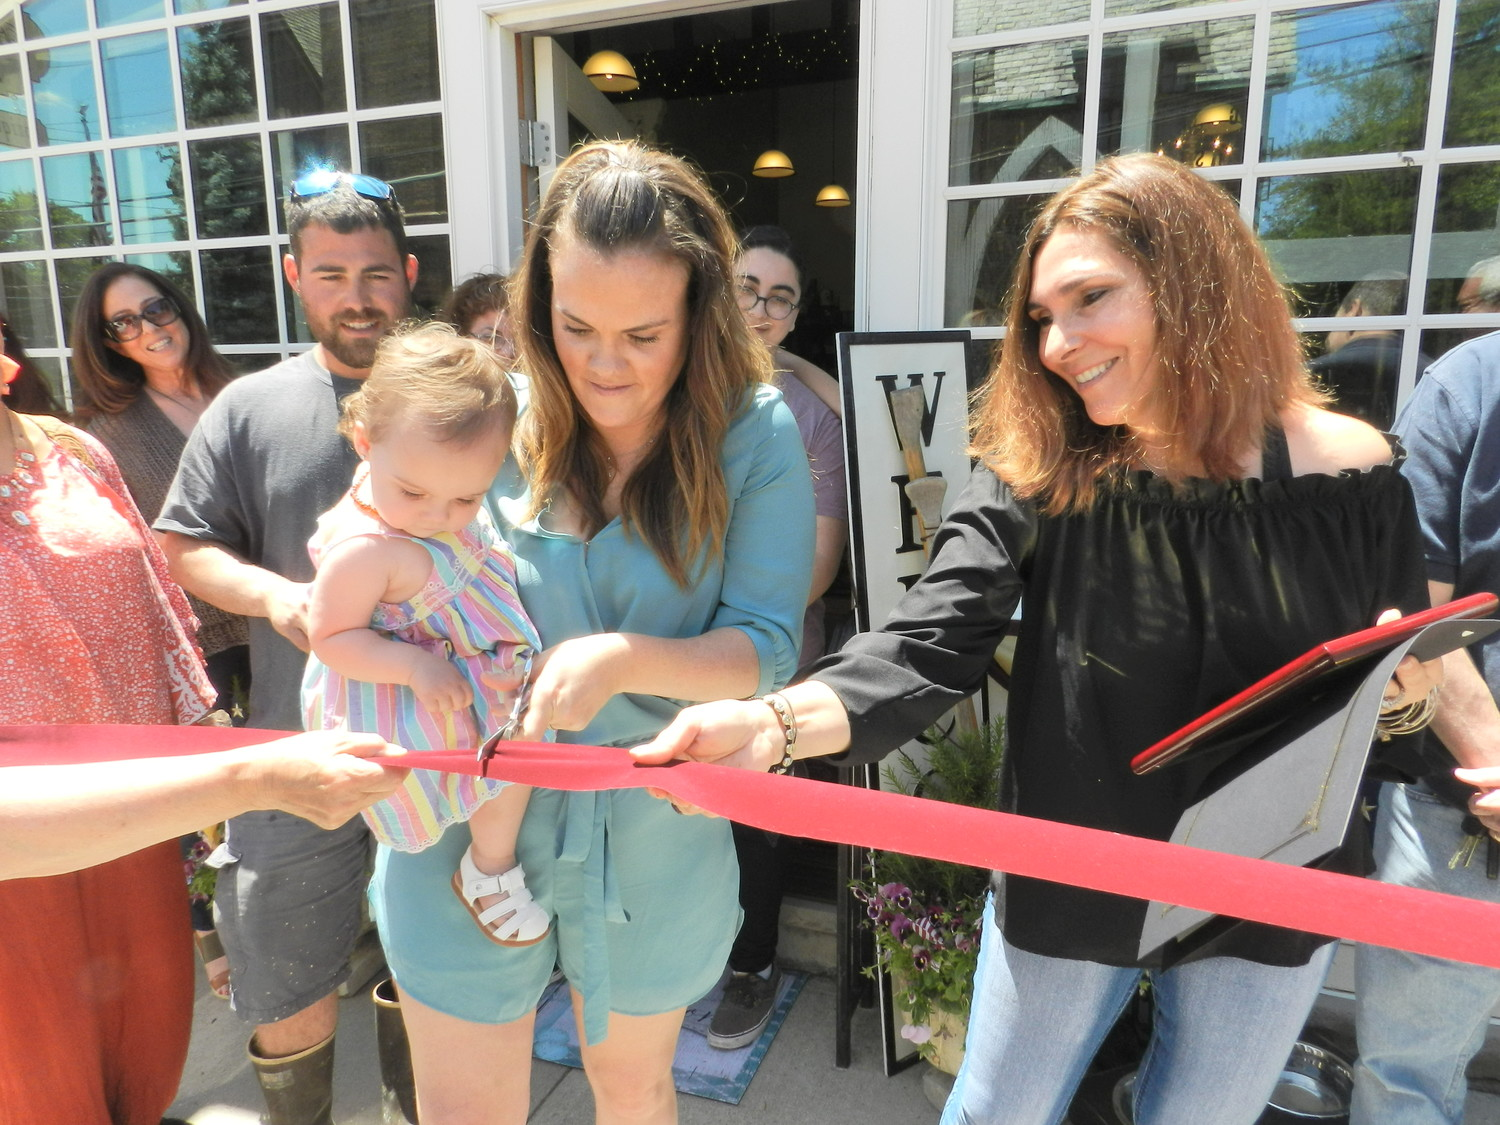 Proprietor Lisa Marchetti, right, let her granddaughter Sailor do the honors of cutting the ribbon at the grand opening of her store My Beautiful Mess.